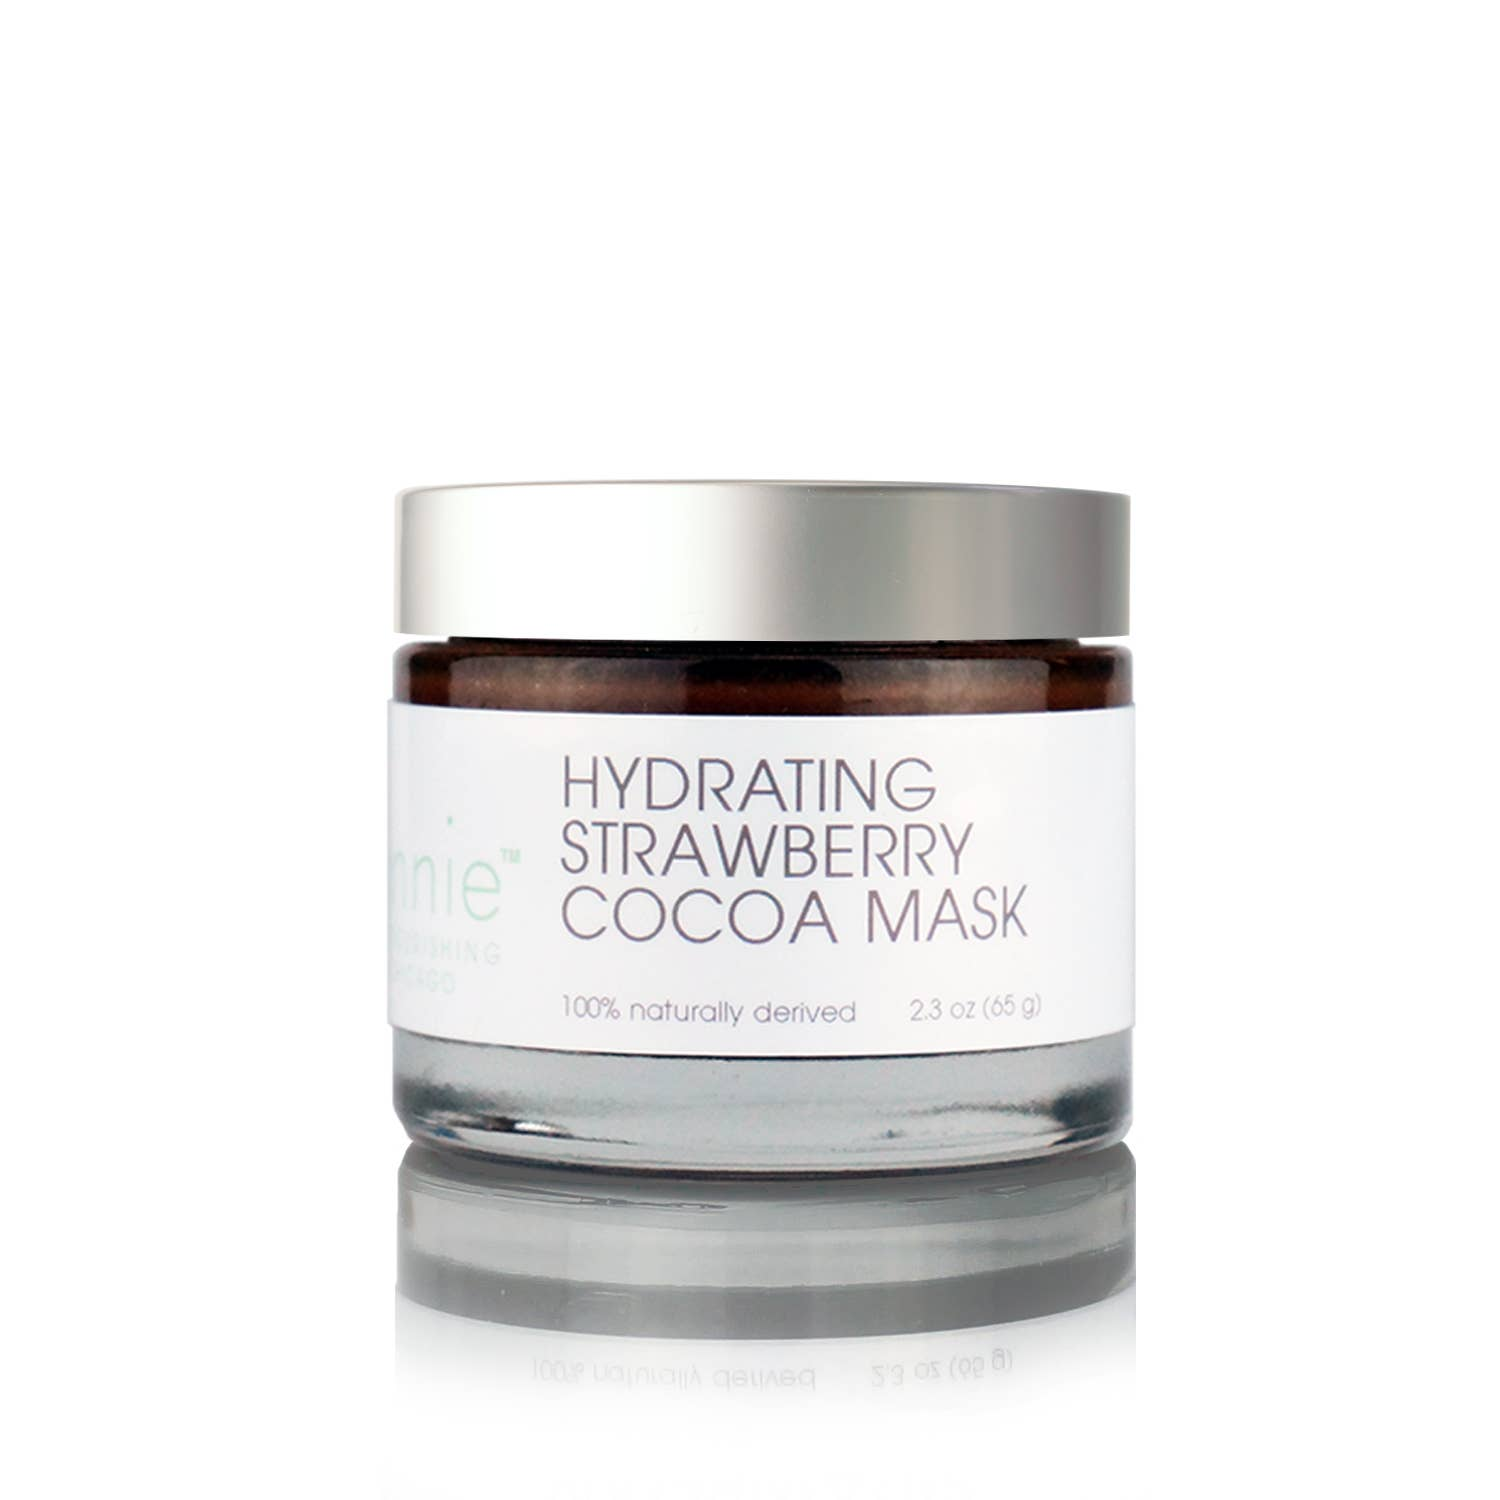 Mask / Hydrating Strawberry Cocoa Mask